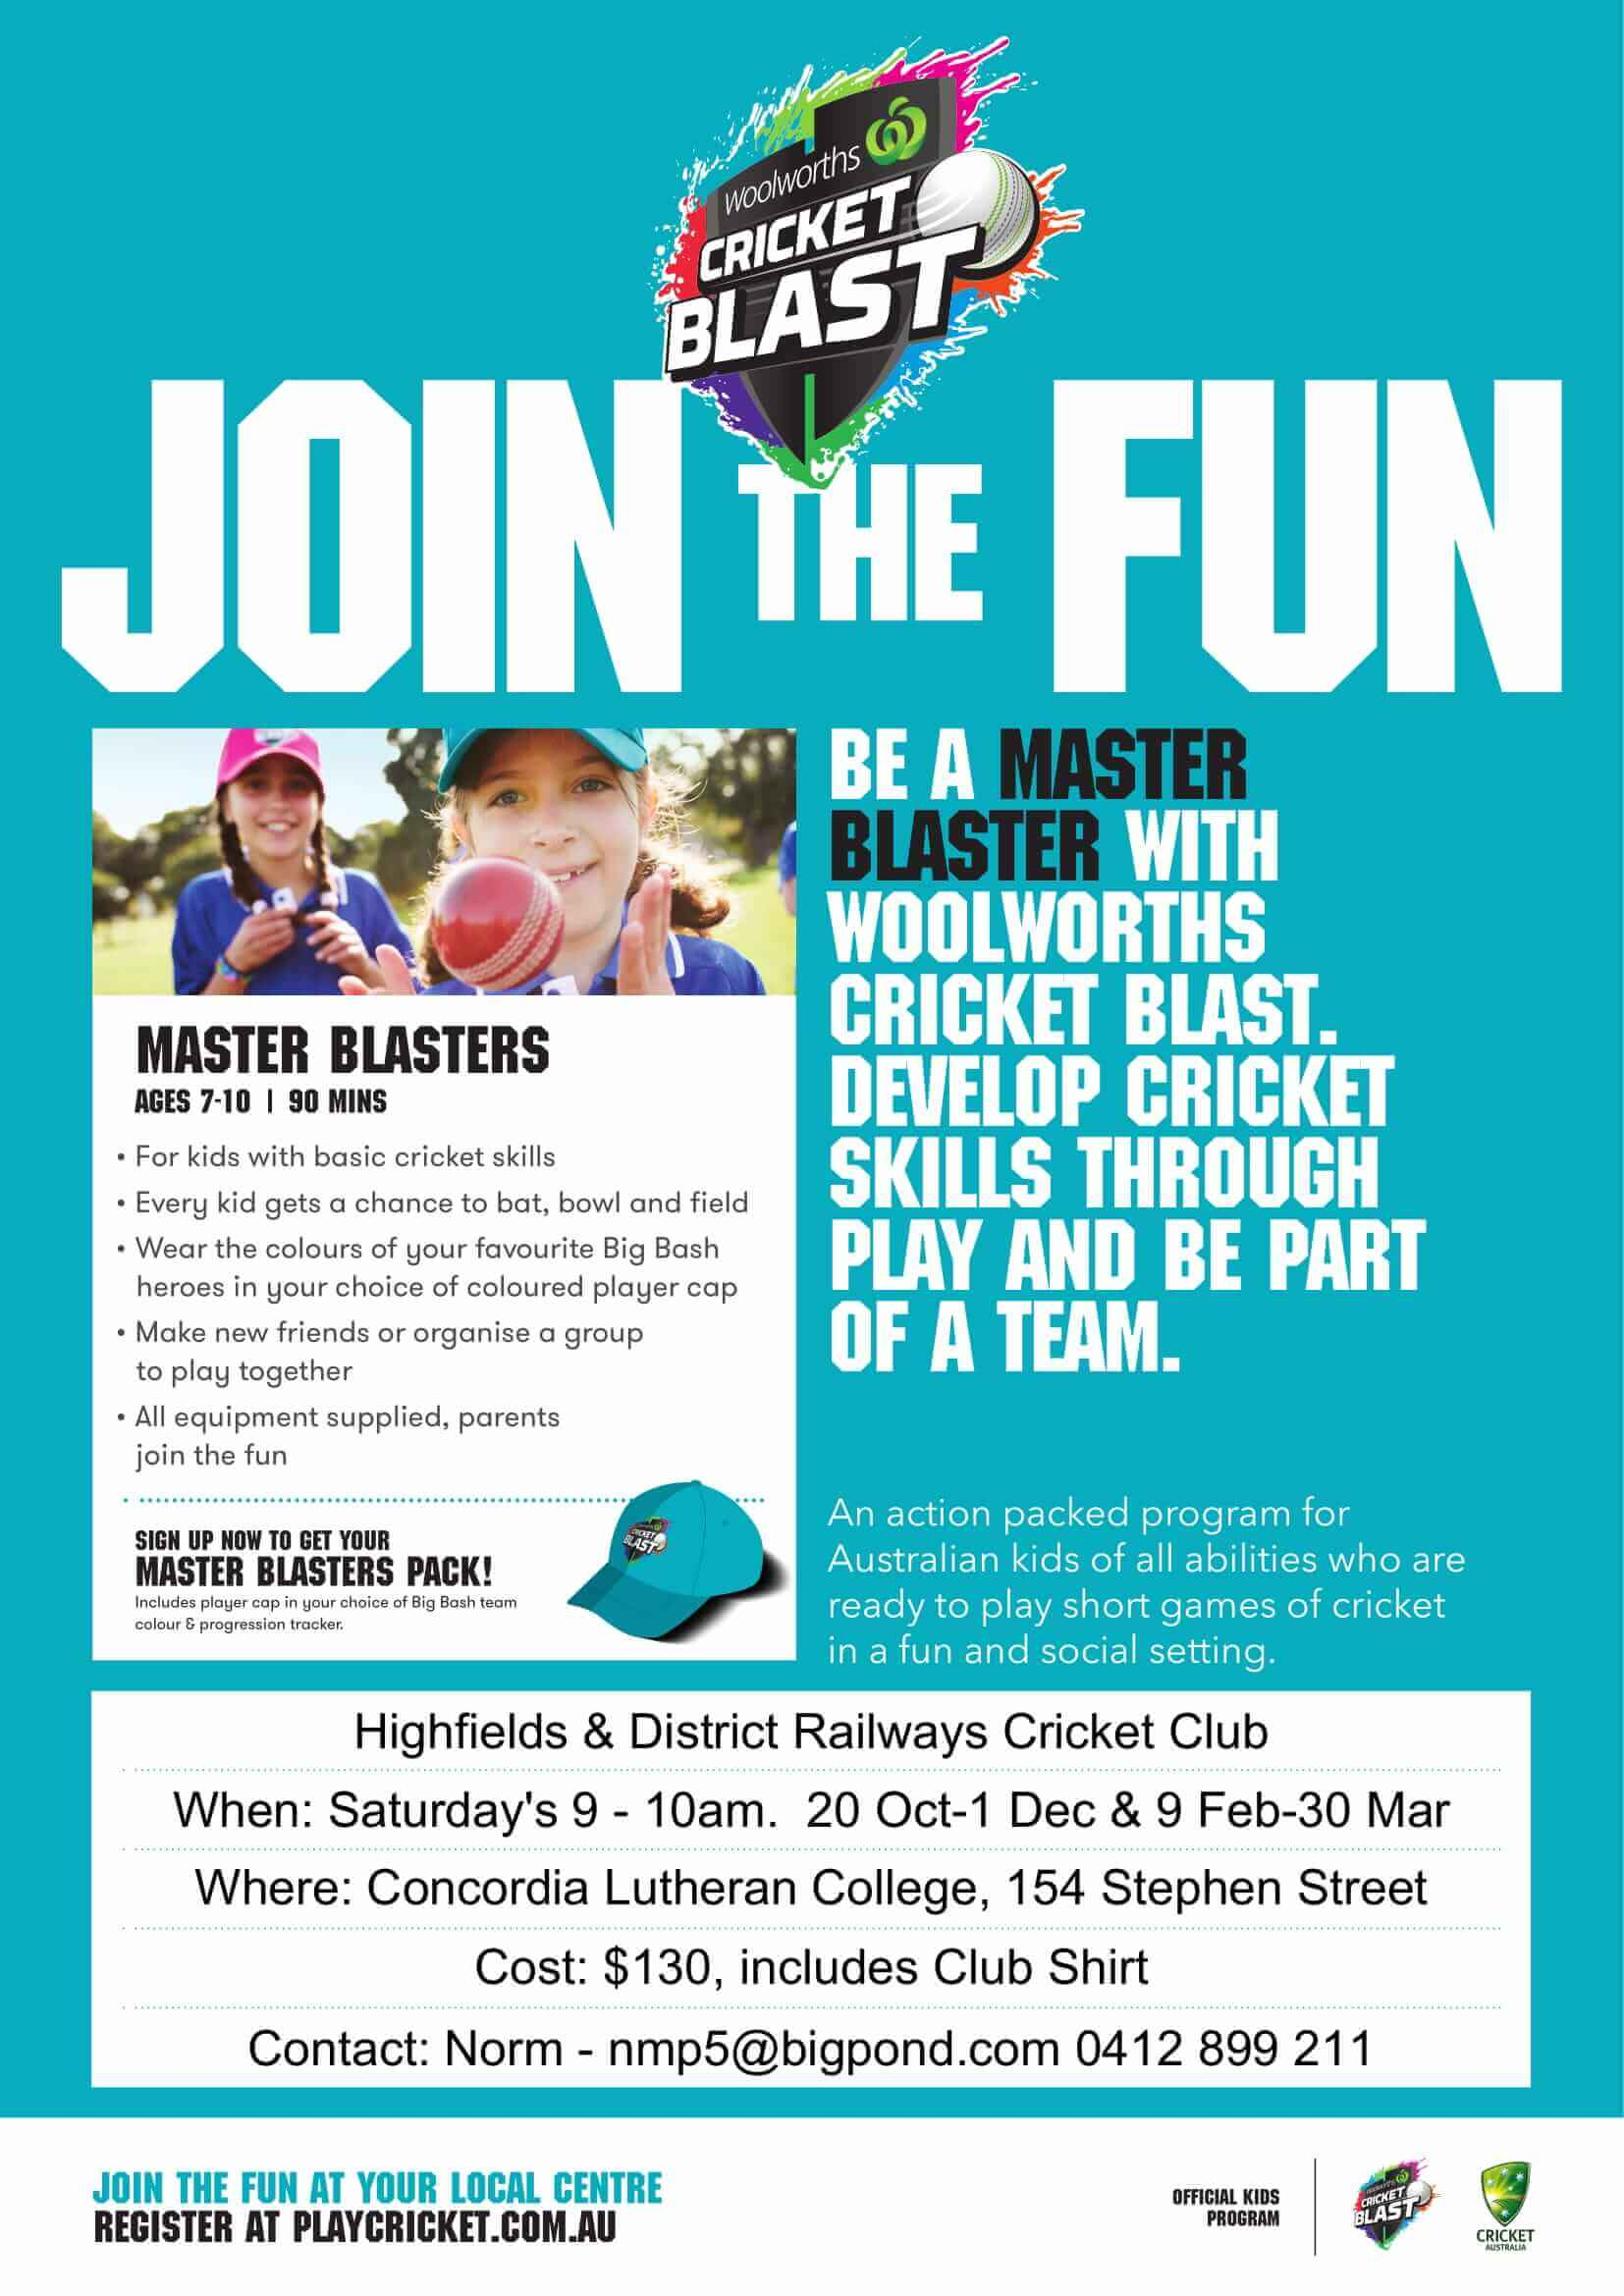 Master Blaster Junior Cricket Highfields